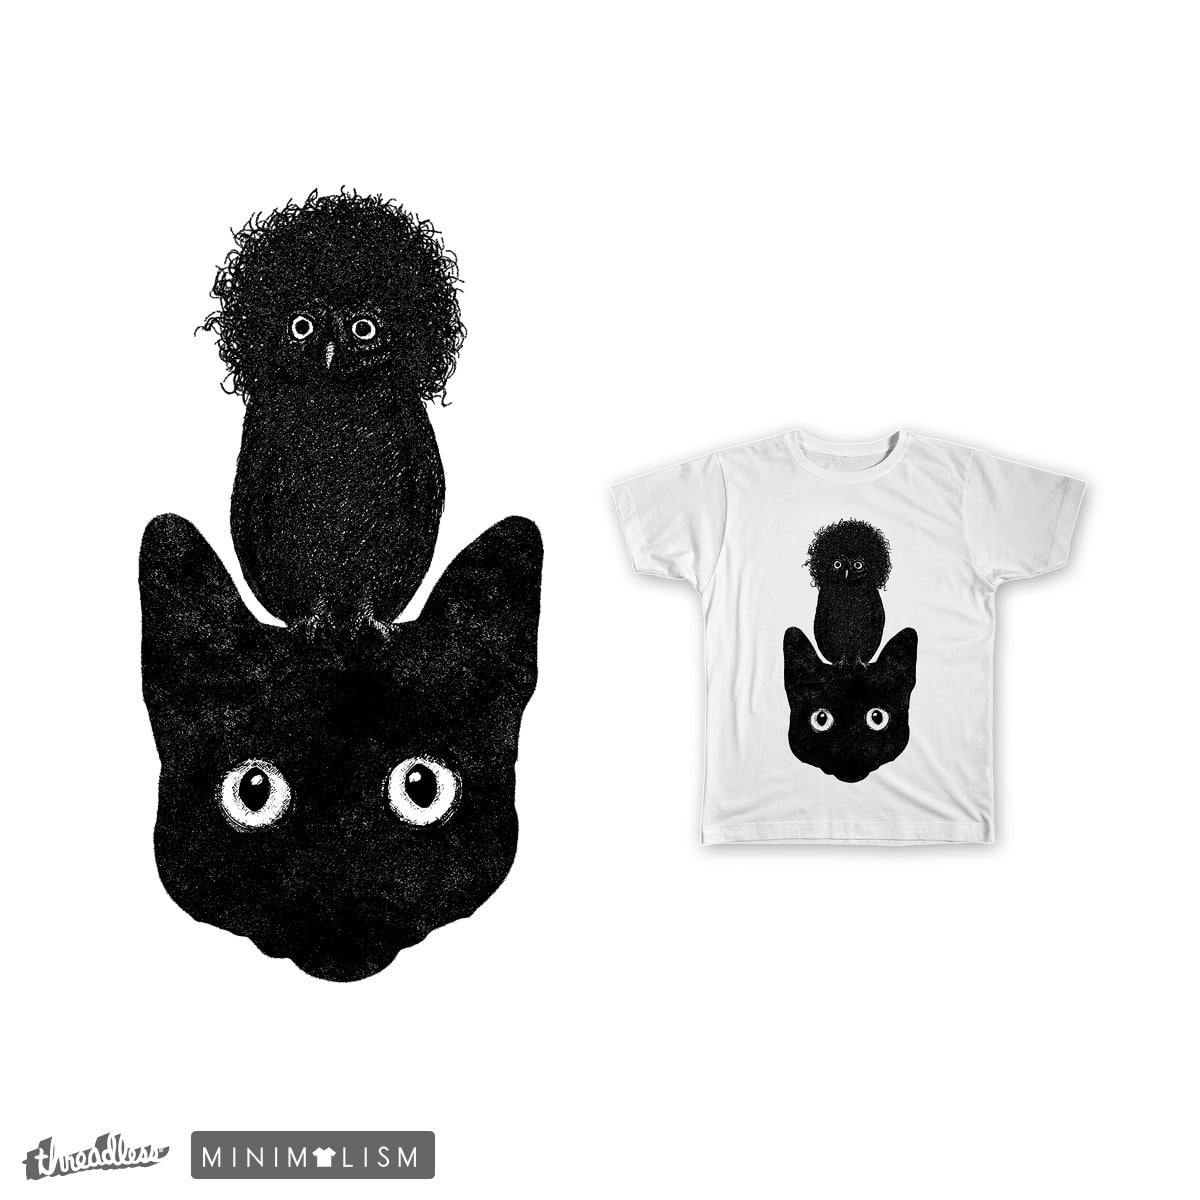 the minimals by bulo on Threadless